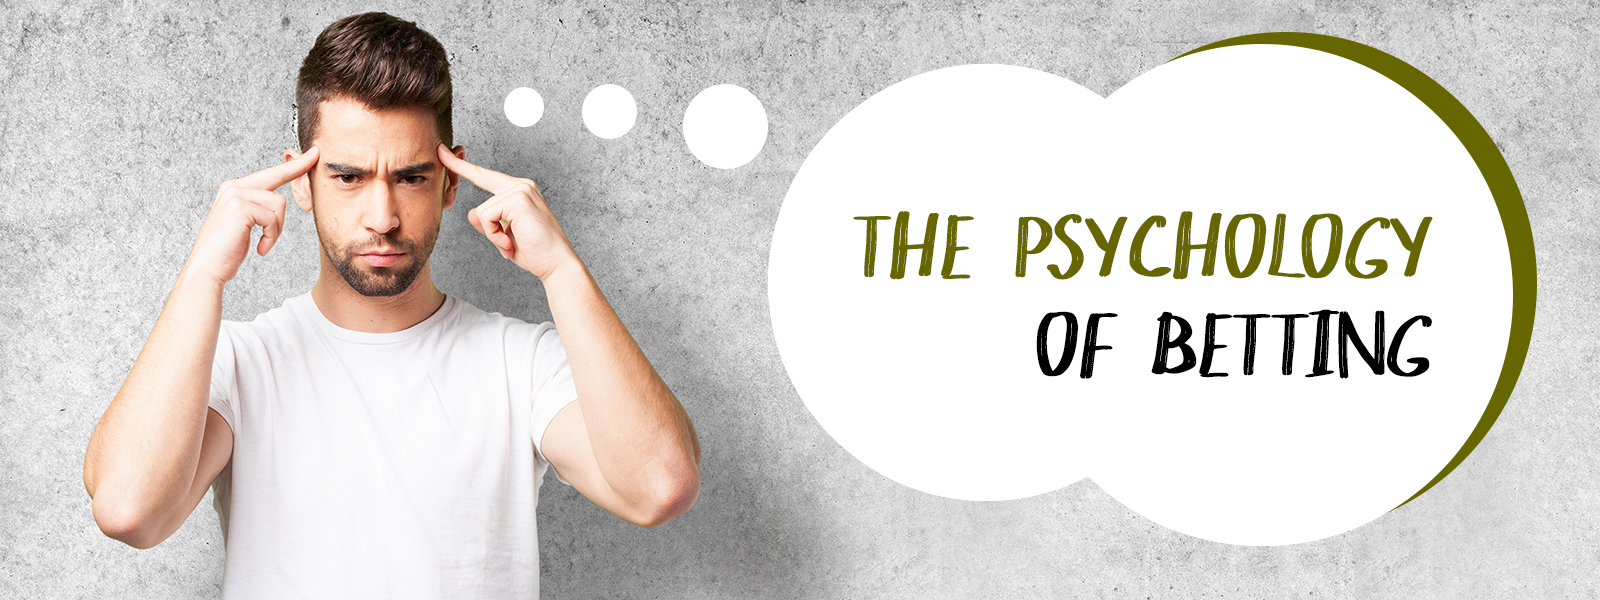 The Psychology Of Betting